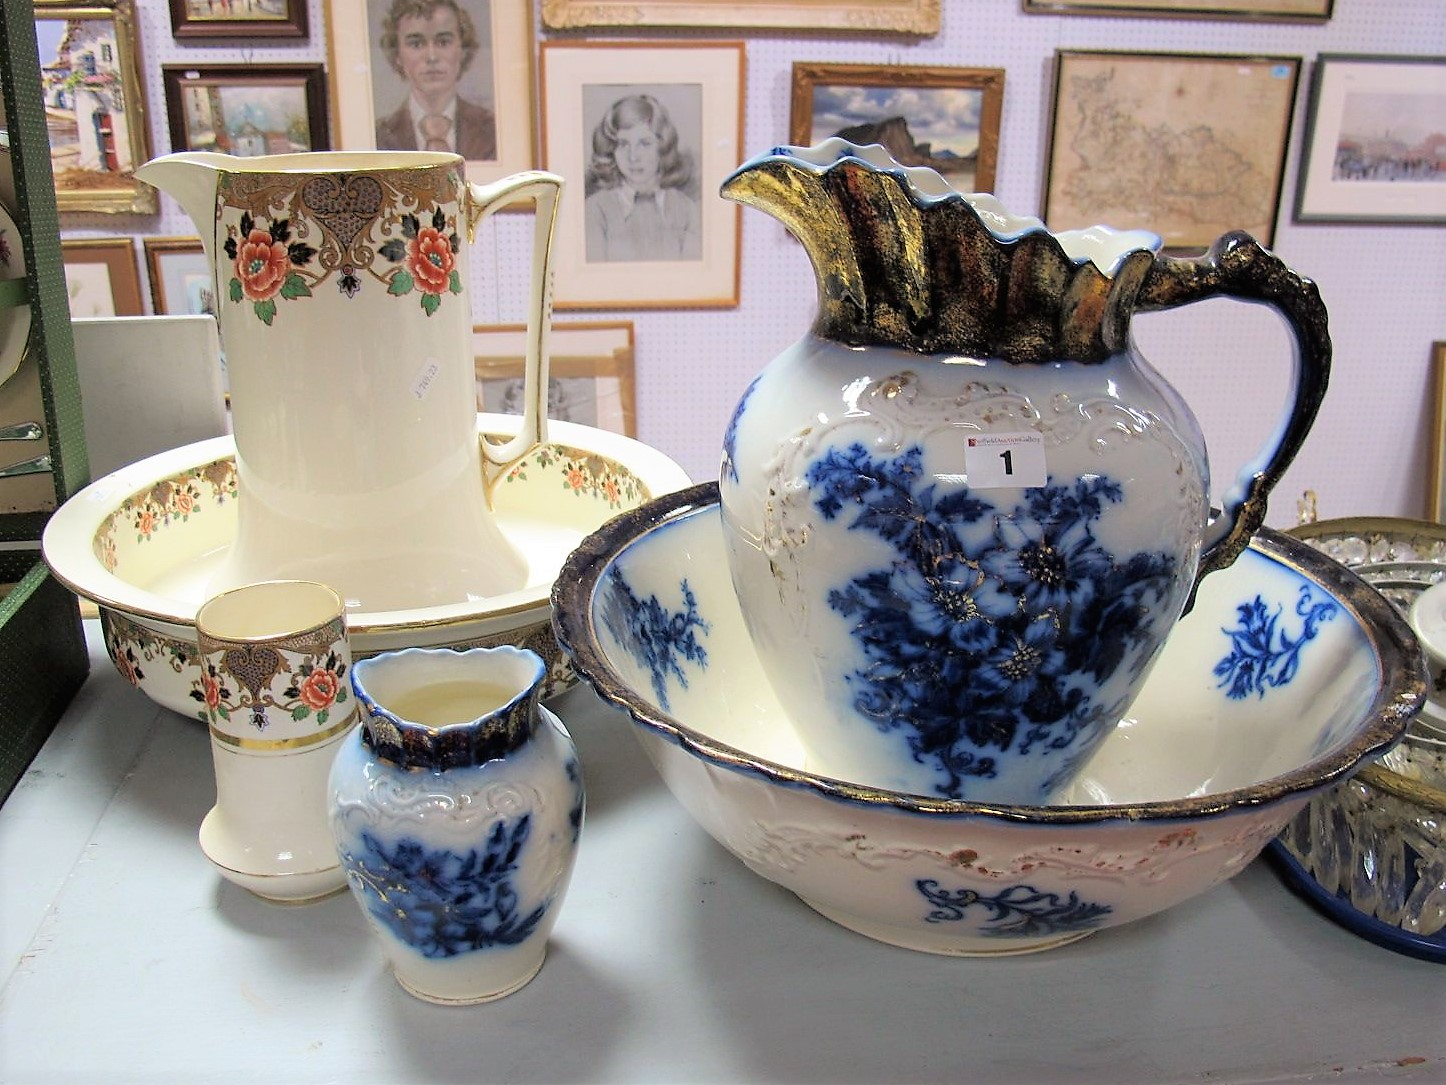 Lot 1 - A Falcon Ware Toilet Jug and Bowl, with matching toothbrush holder, each with transfer printed